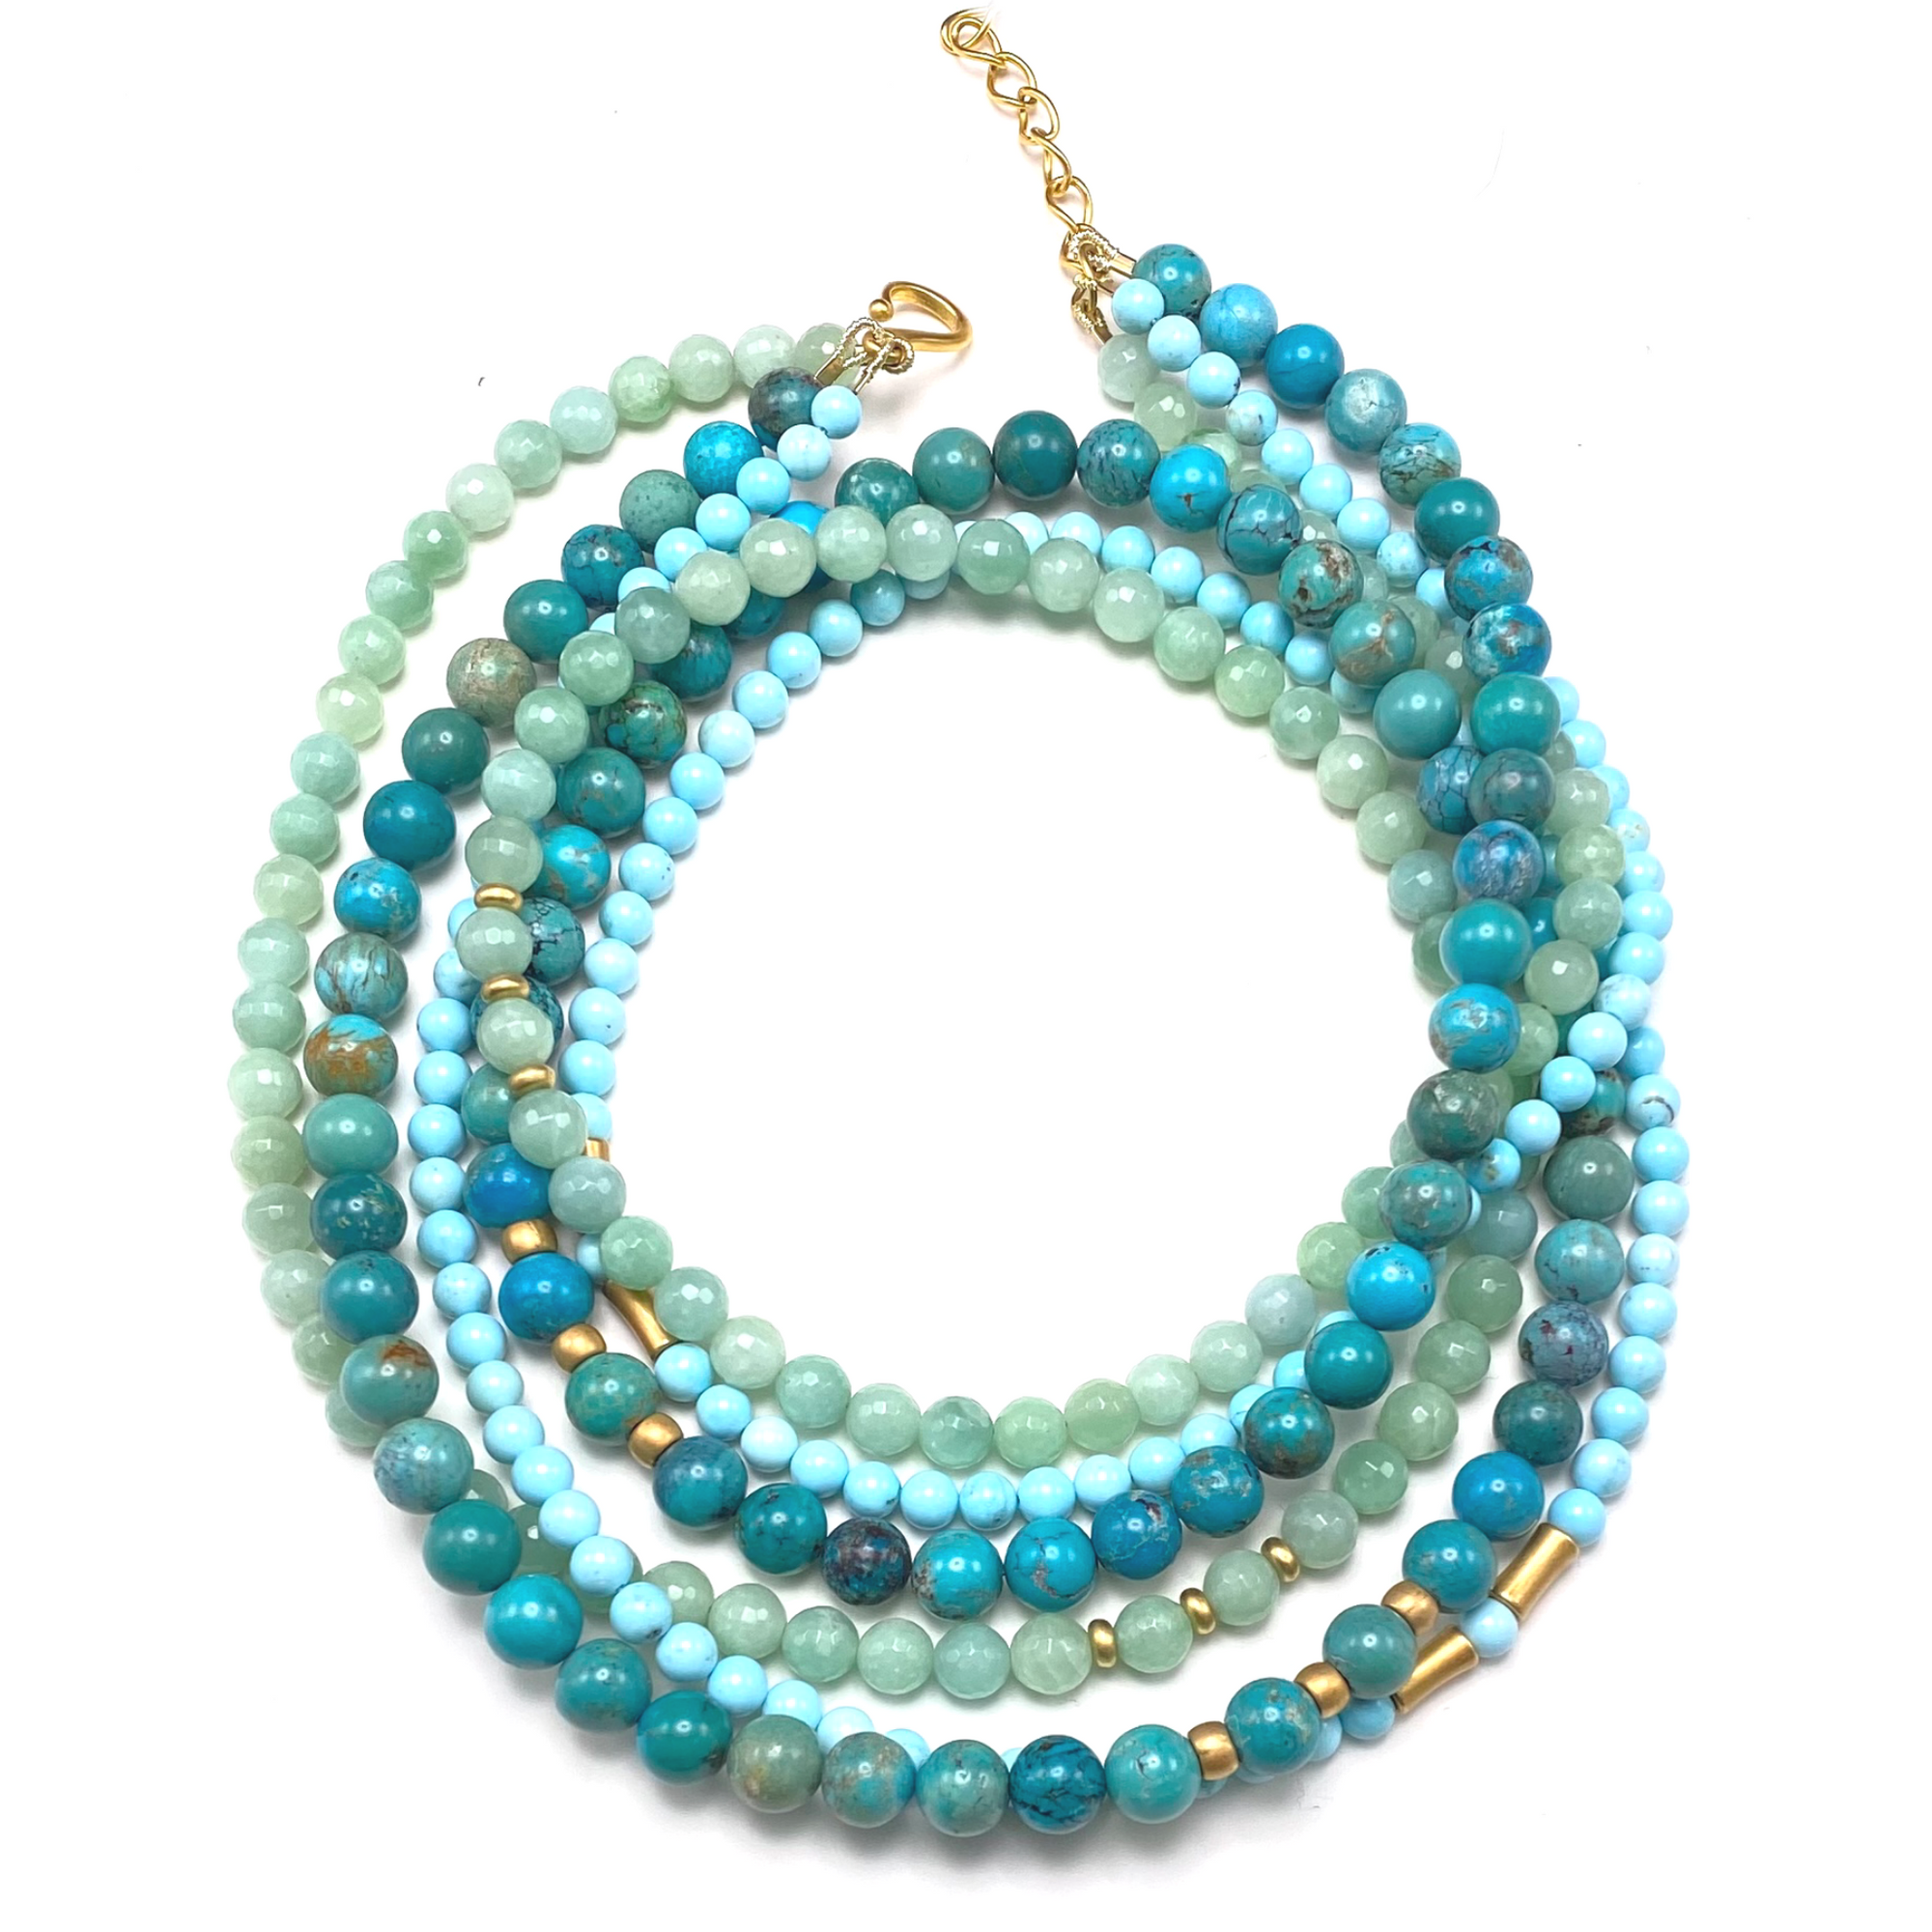 Triple Ocean Necklace